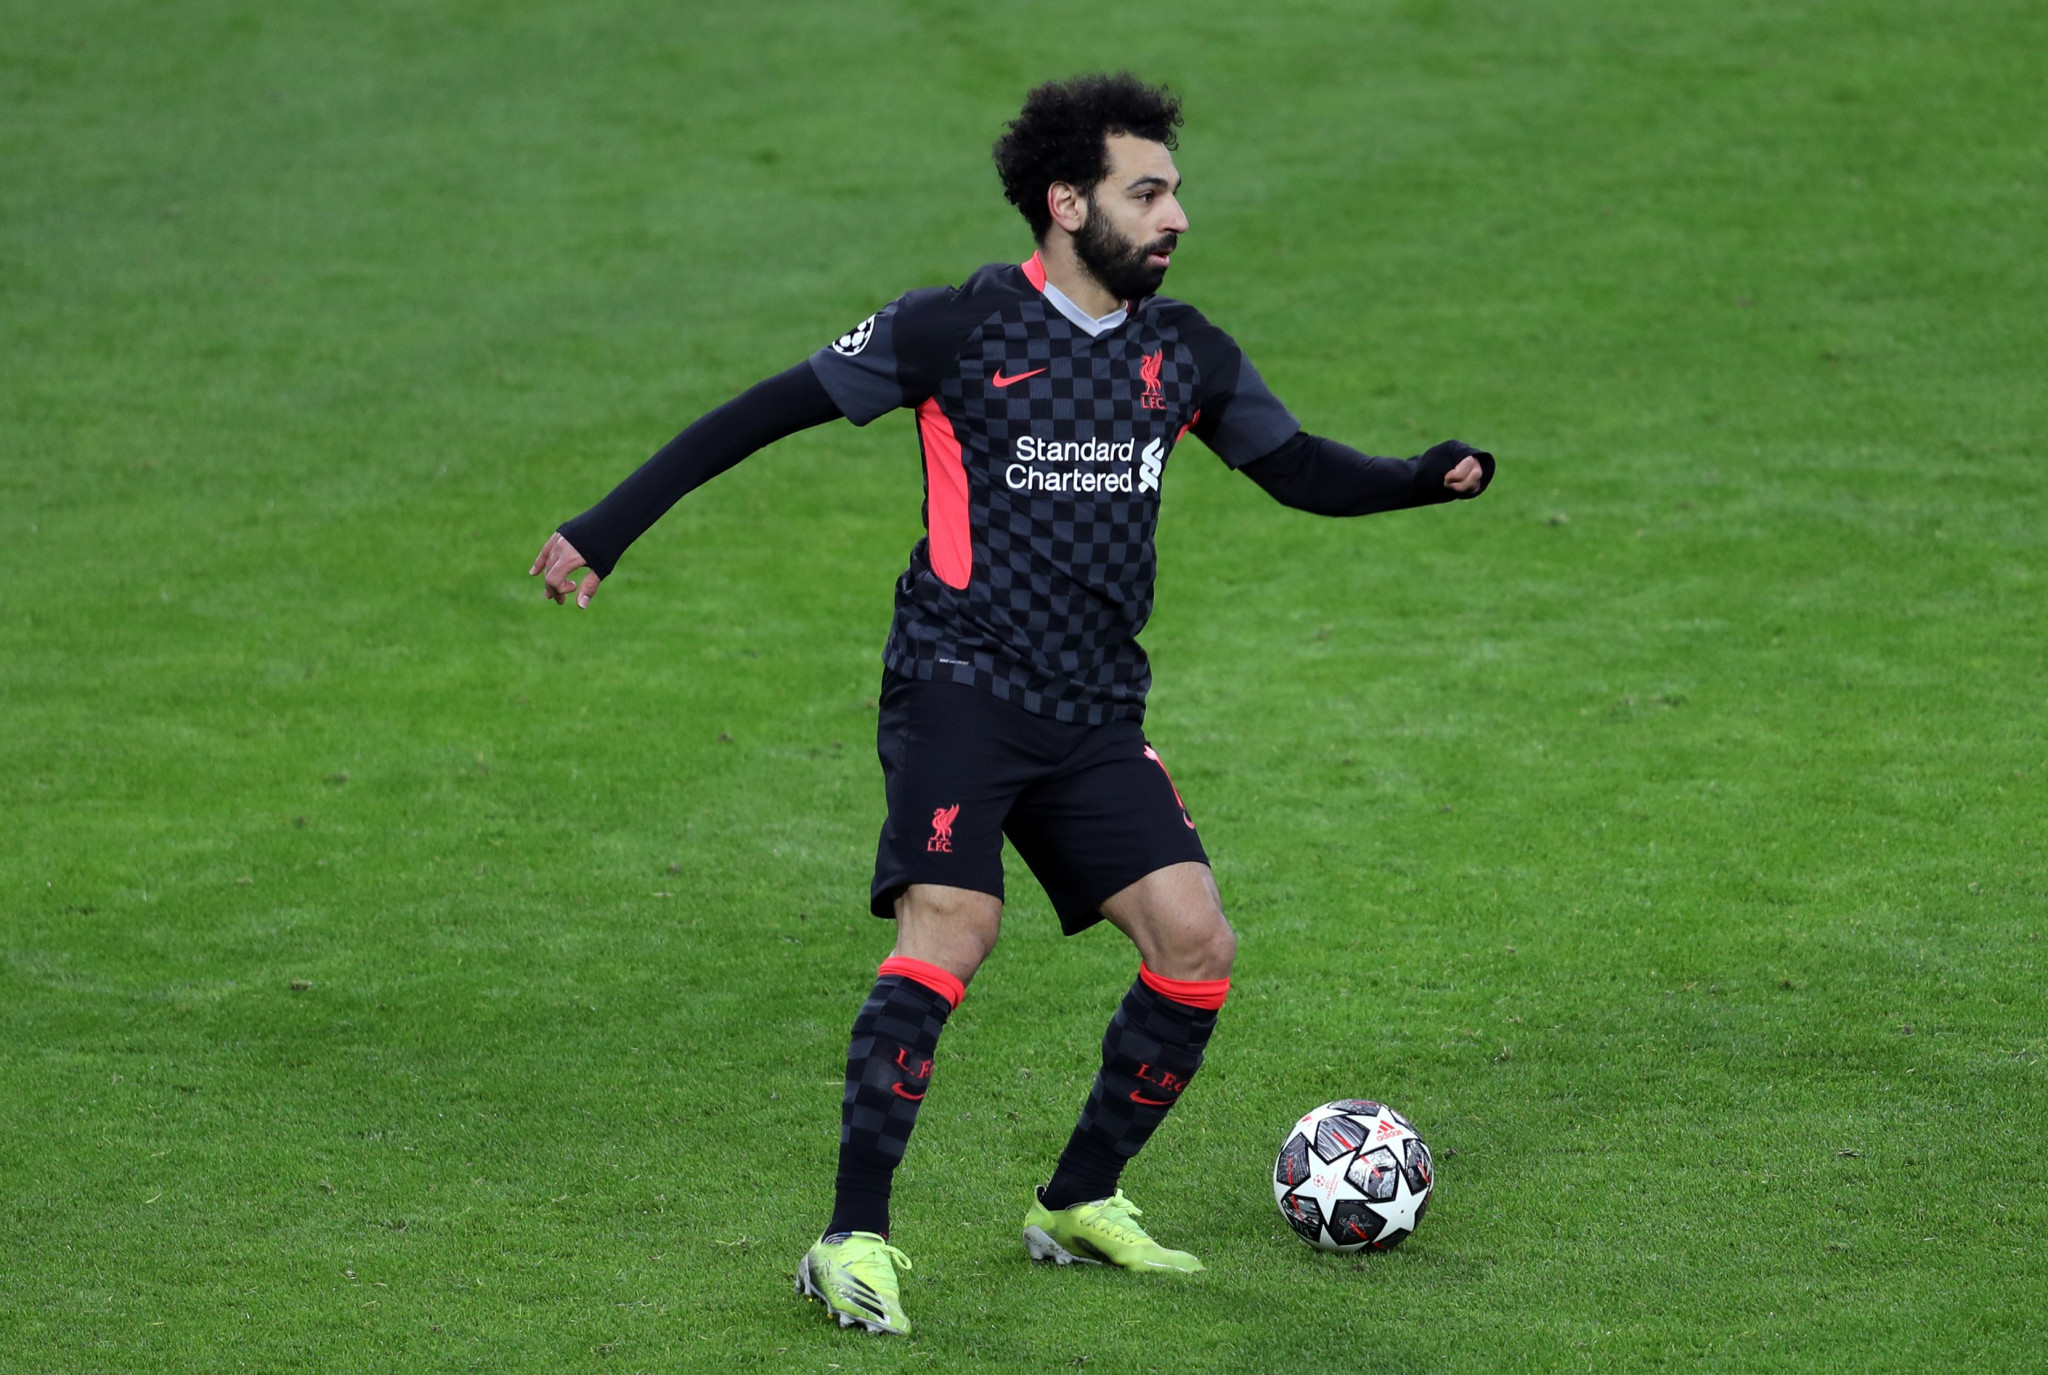 Liverpool striker Mohamed Salah has been tipped to appear for Egypt at Tokyo 2020 ©Getty Images